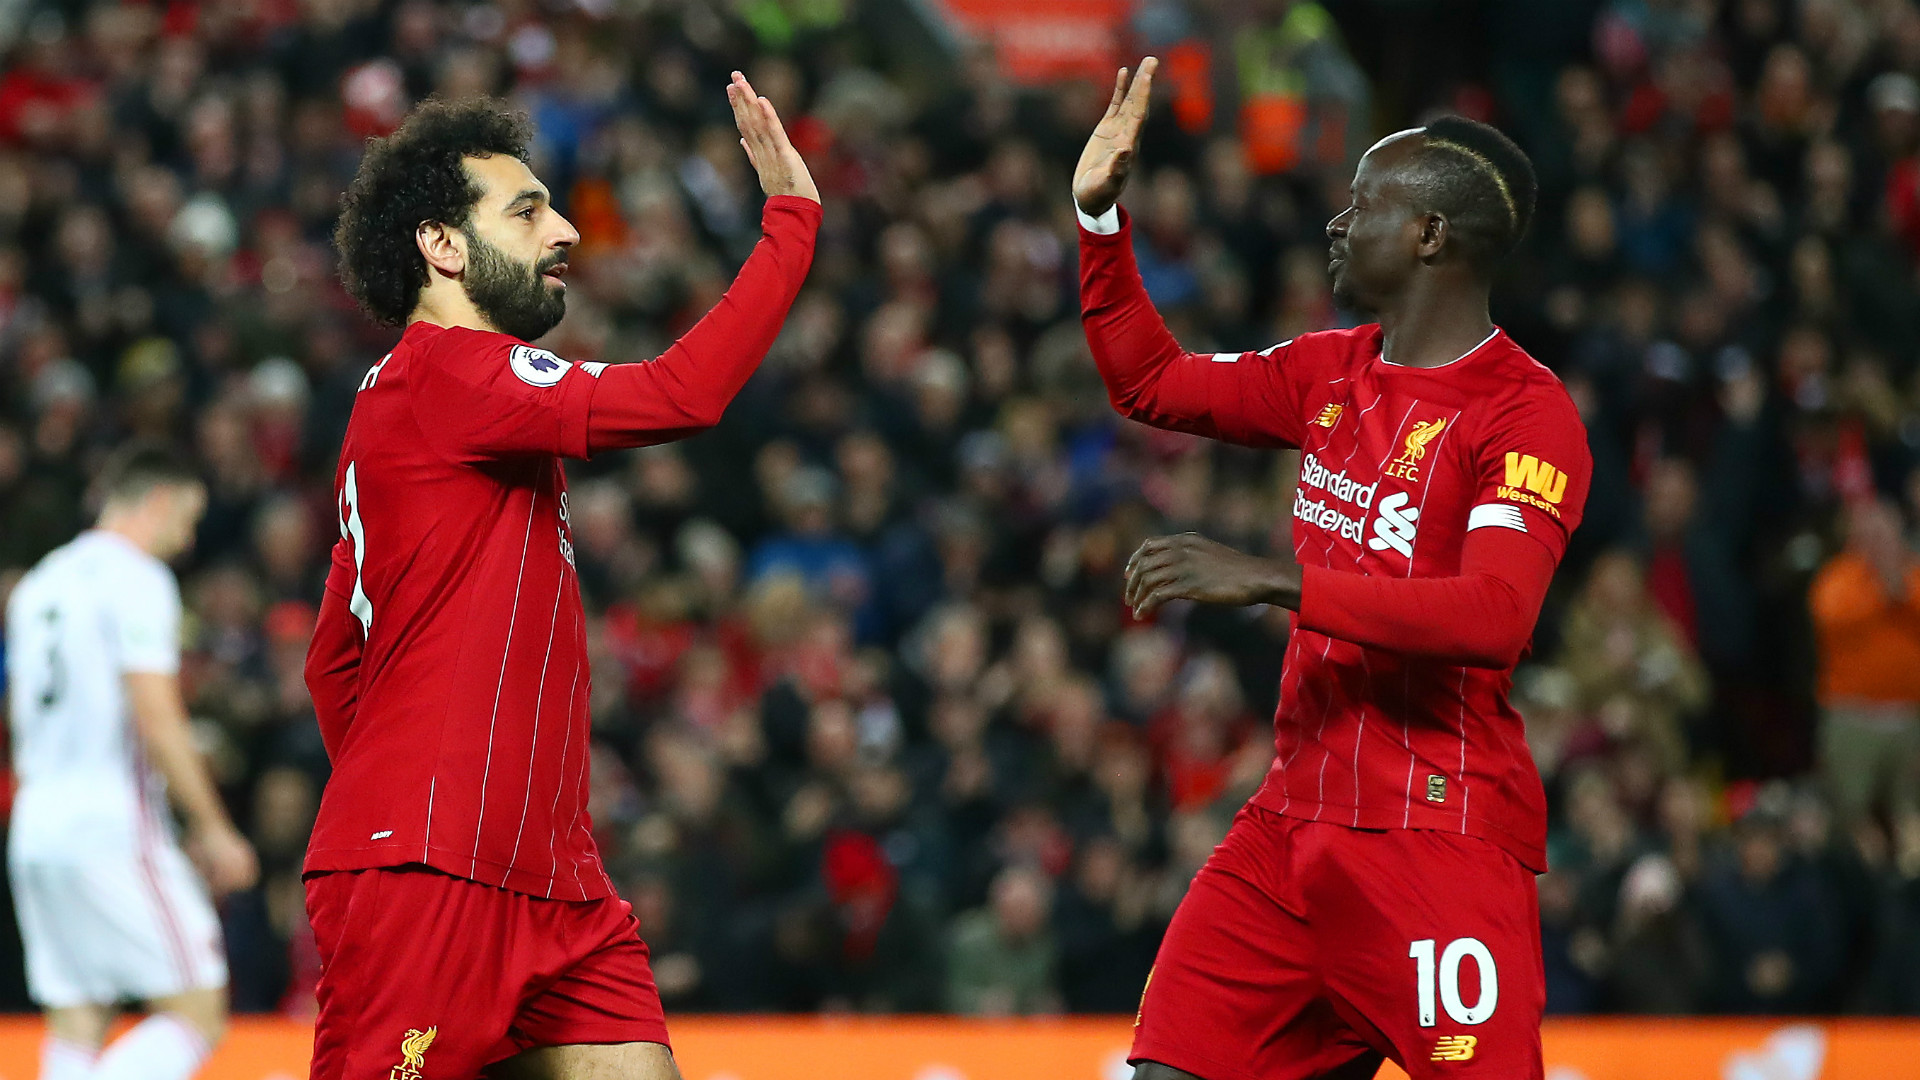 Salah or Mane? Which Liverpool star does Simba SC's Kahata rate higher?